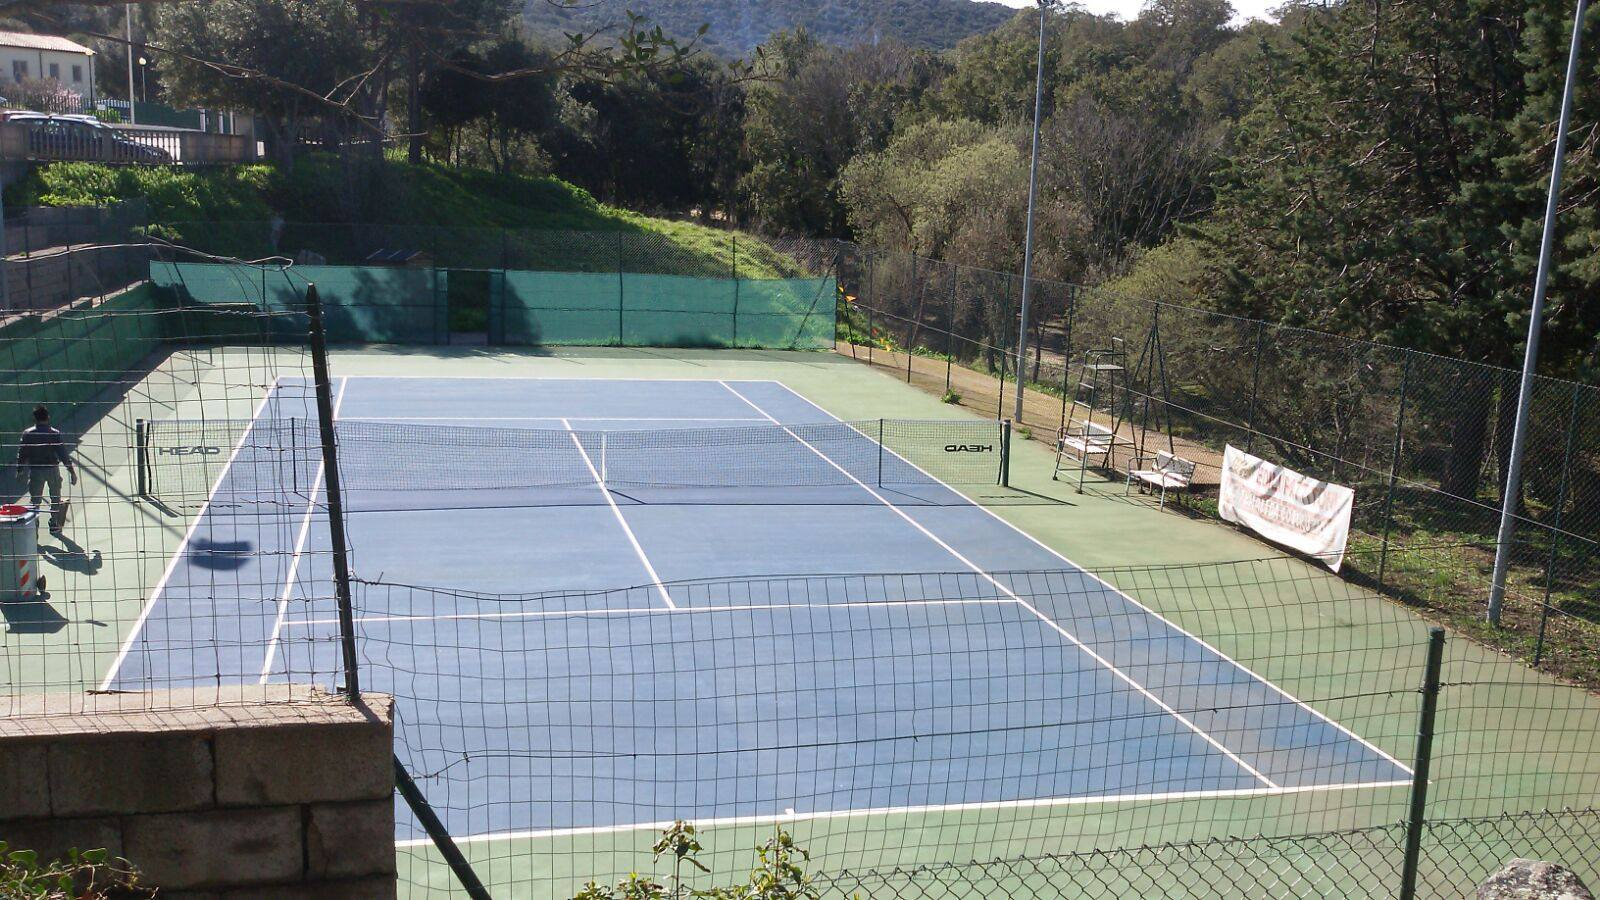 Tennis Club Luogosanto